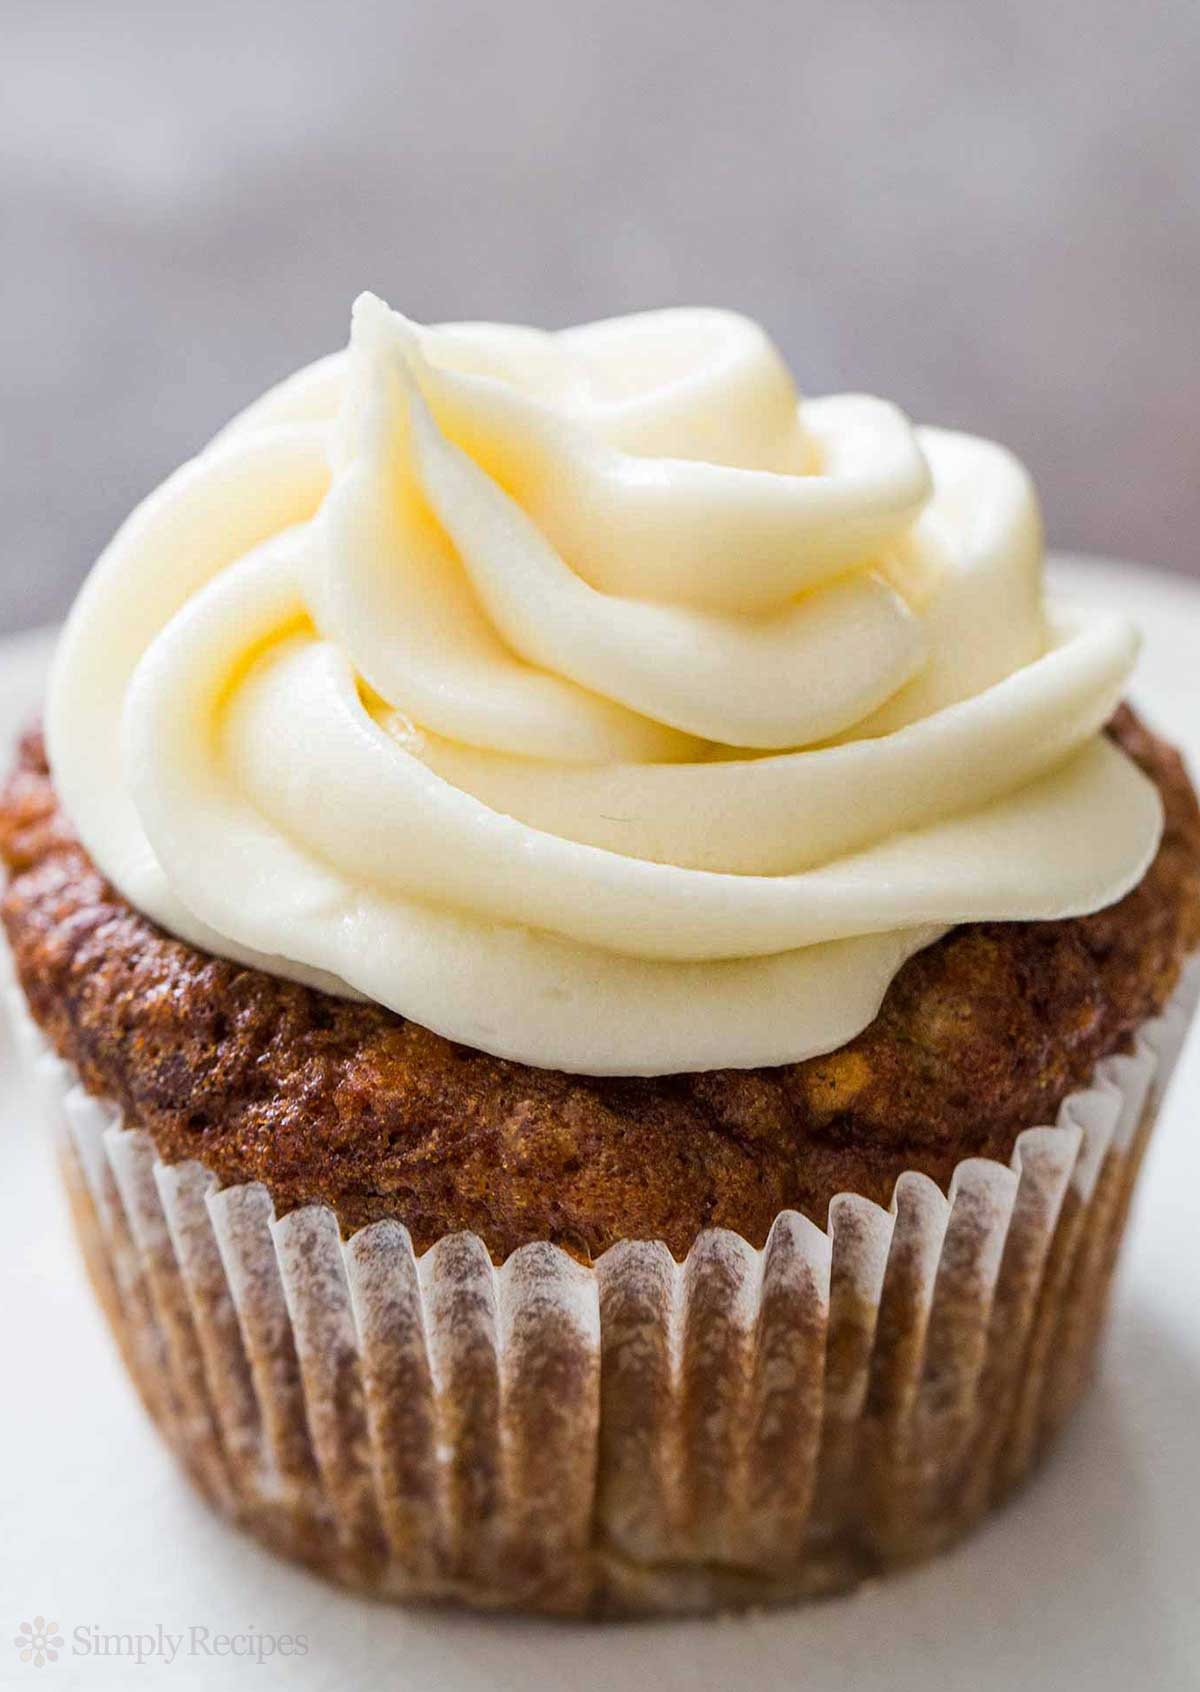 Cake Recipes with Cream Cheese Frosting